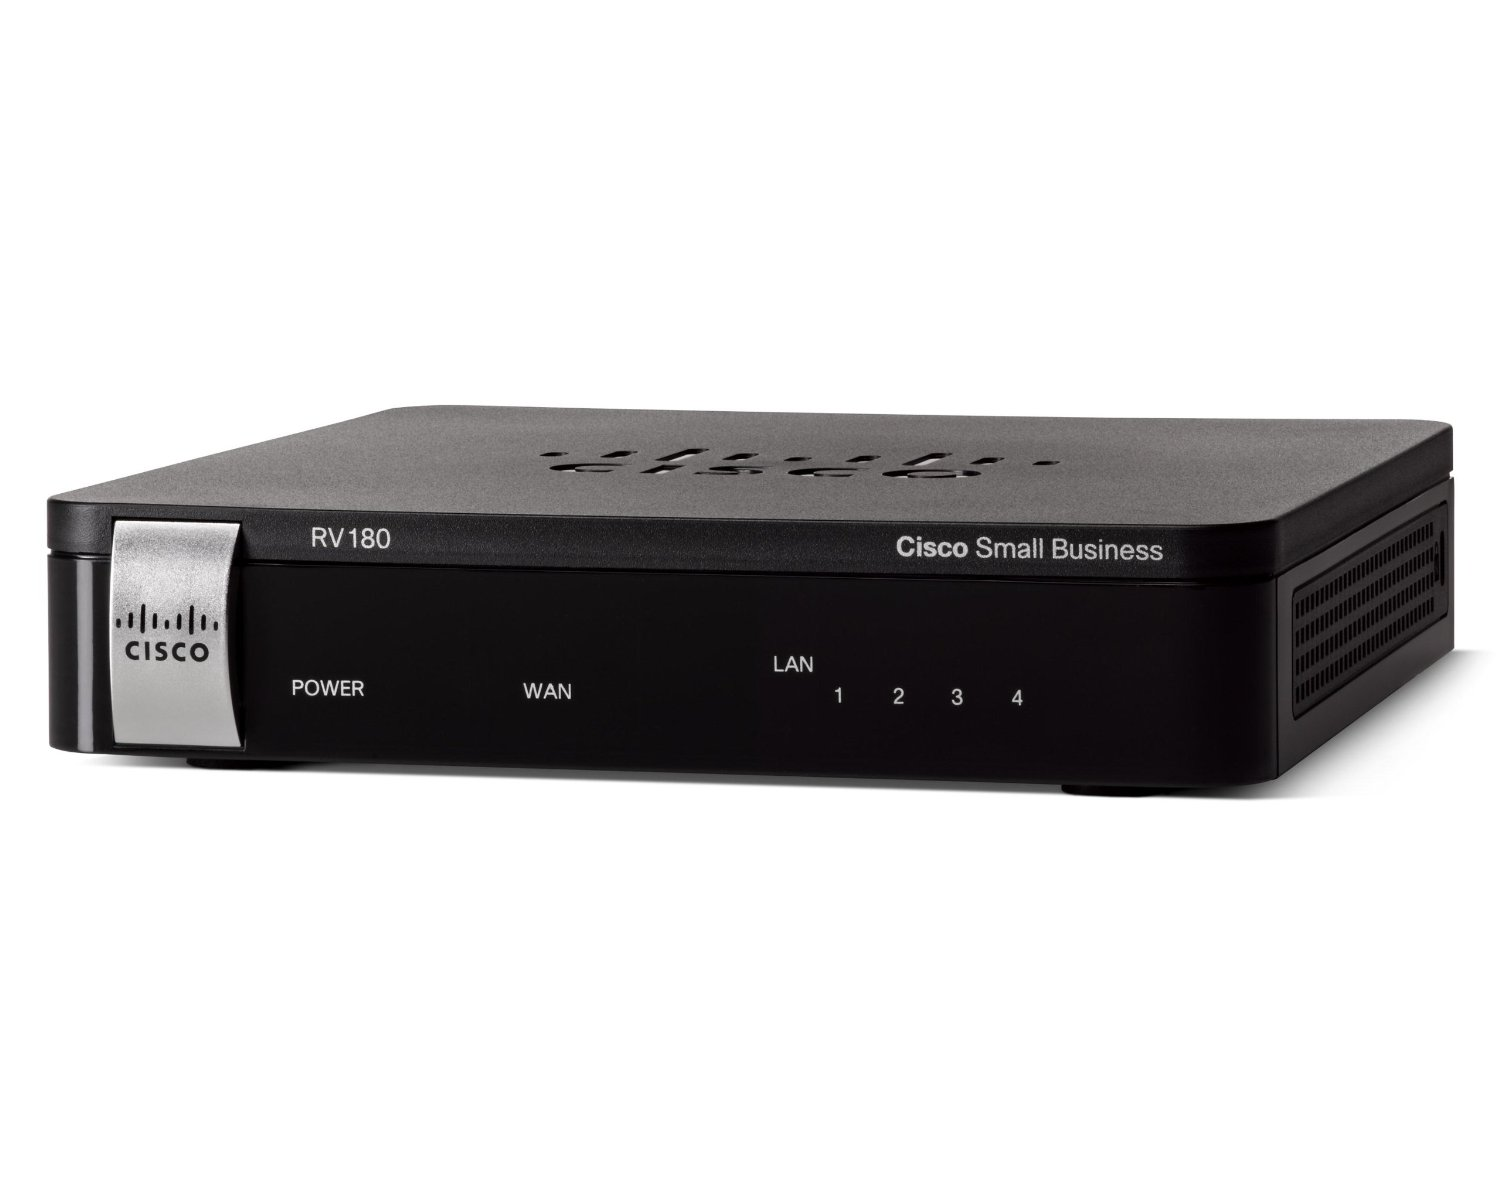 Geolocation Jailbreak – Setting up a Cisco RV-180 router to fool Netflix